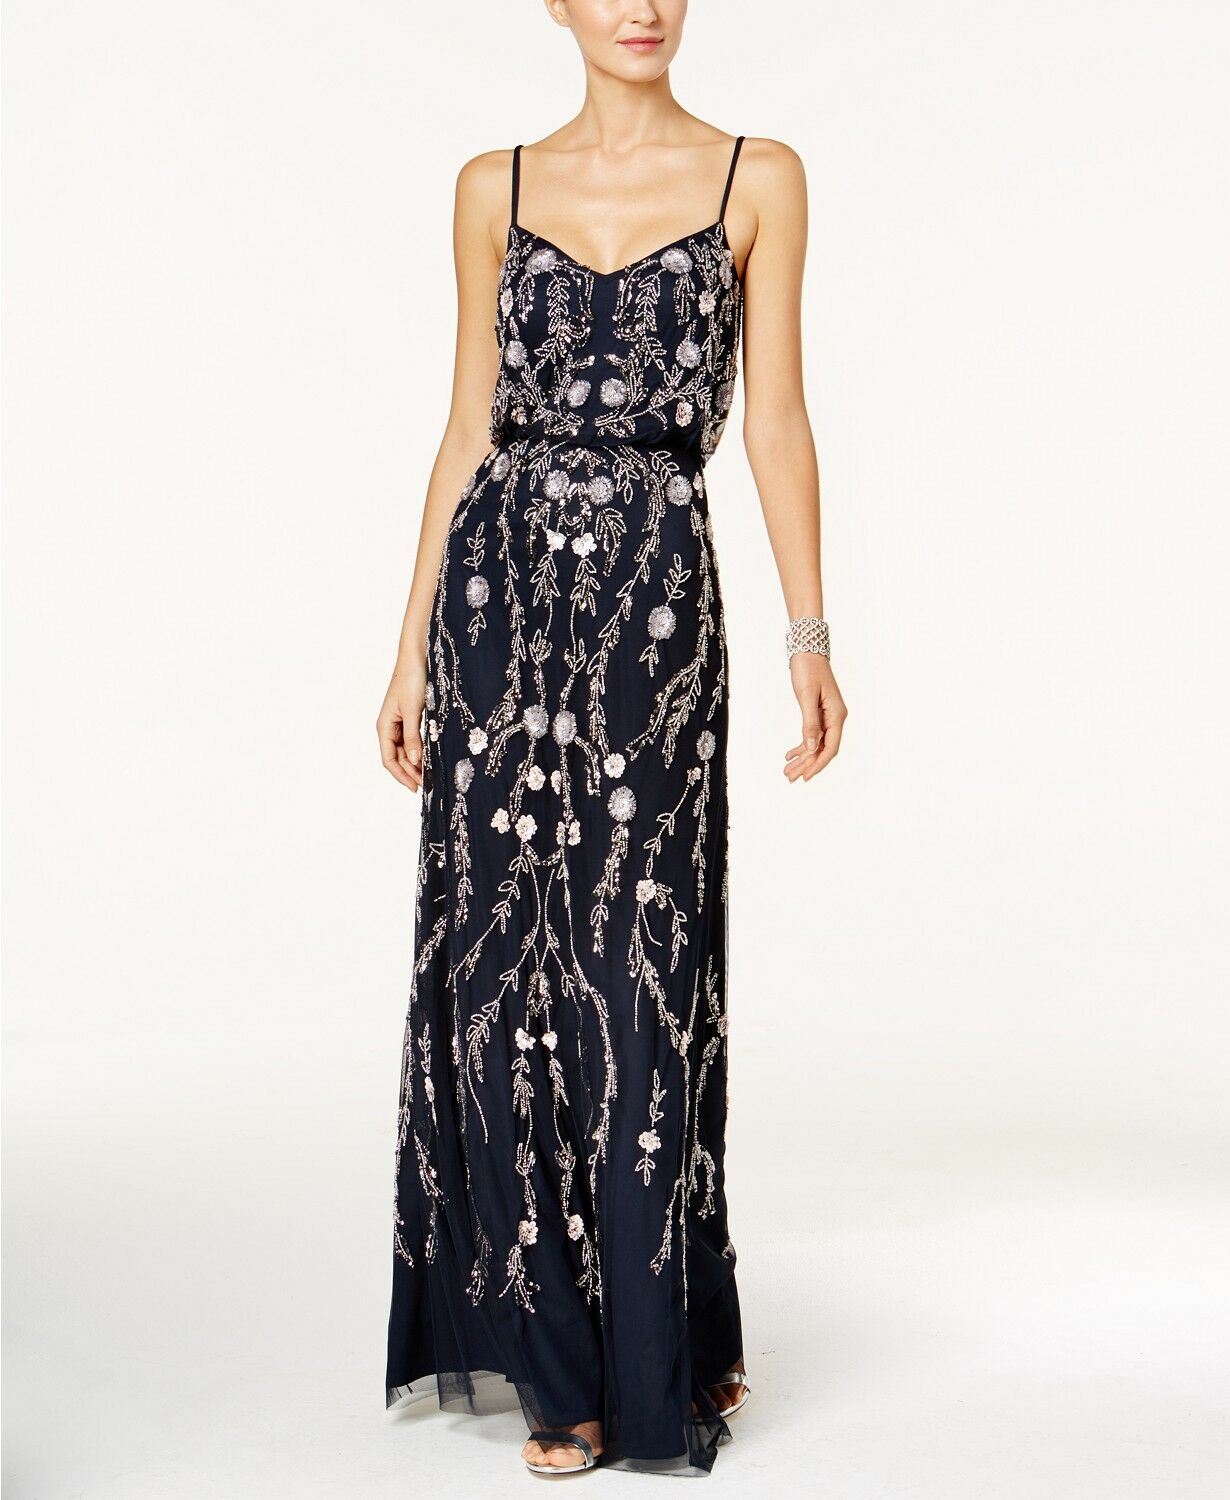 ADRIANNA PAPELL WOMEN'S blueE EMBELLISHED SEQUINS BLOUSON GOWN DRESS SIZE 6